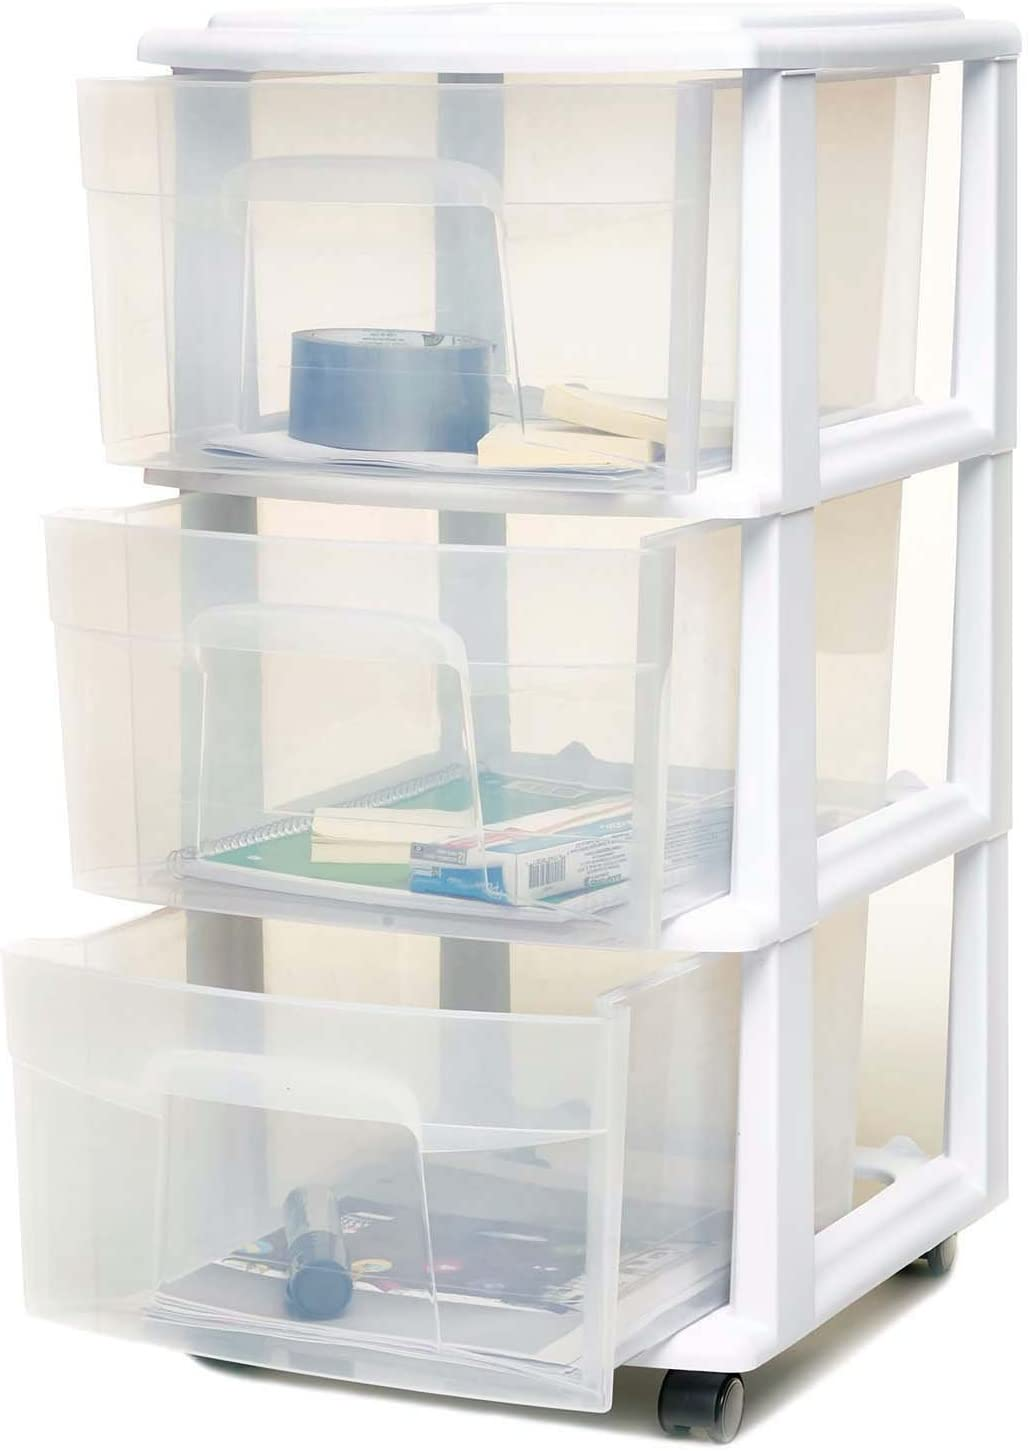 HOMZ 3 Drawer Medium Storage Cart, Set of 1, White: Home & Kitchen